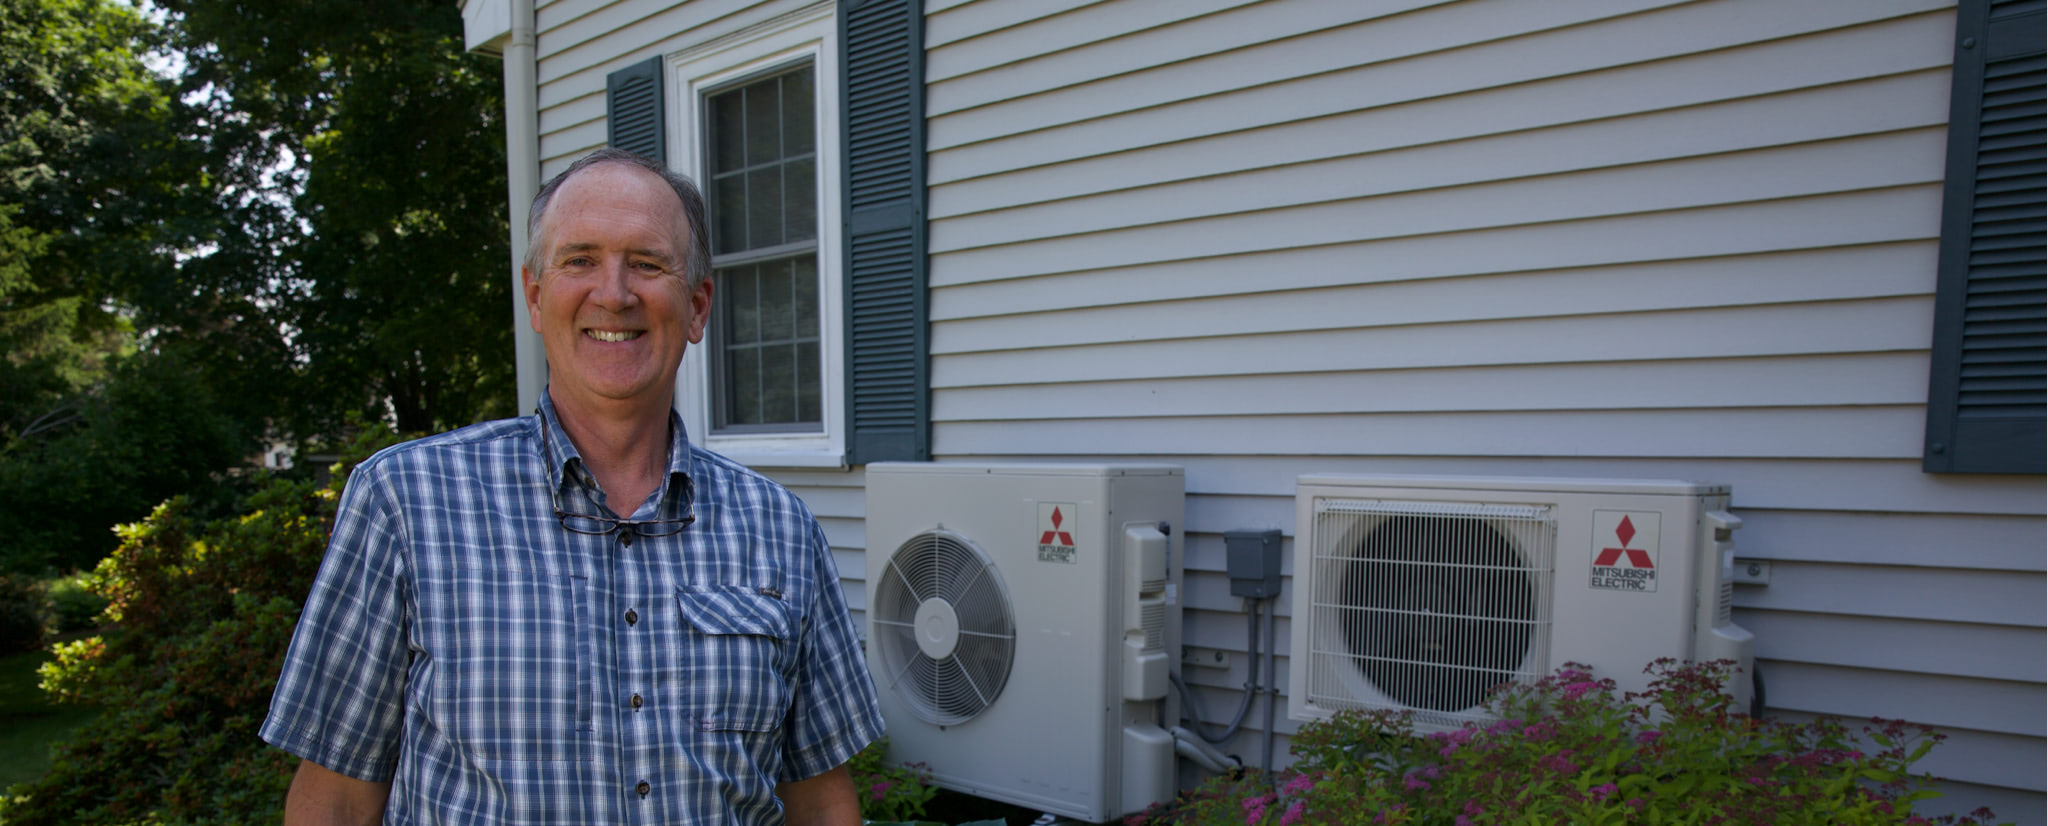 Man standing next to heat pumps attached to house.